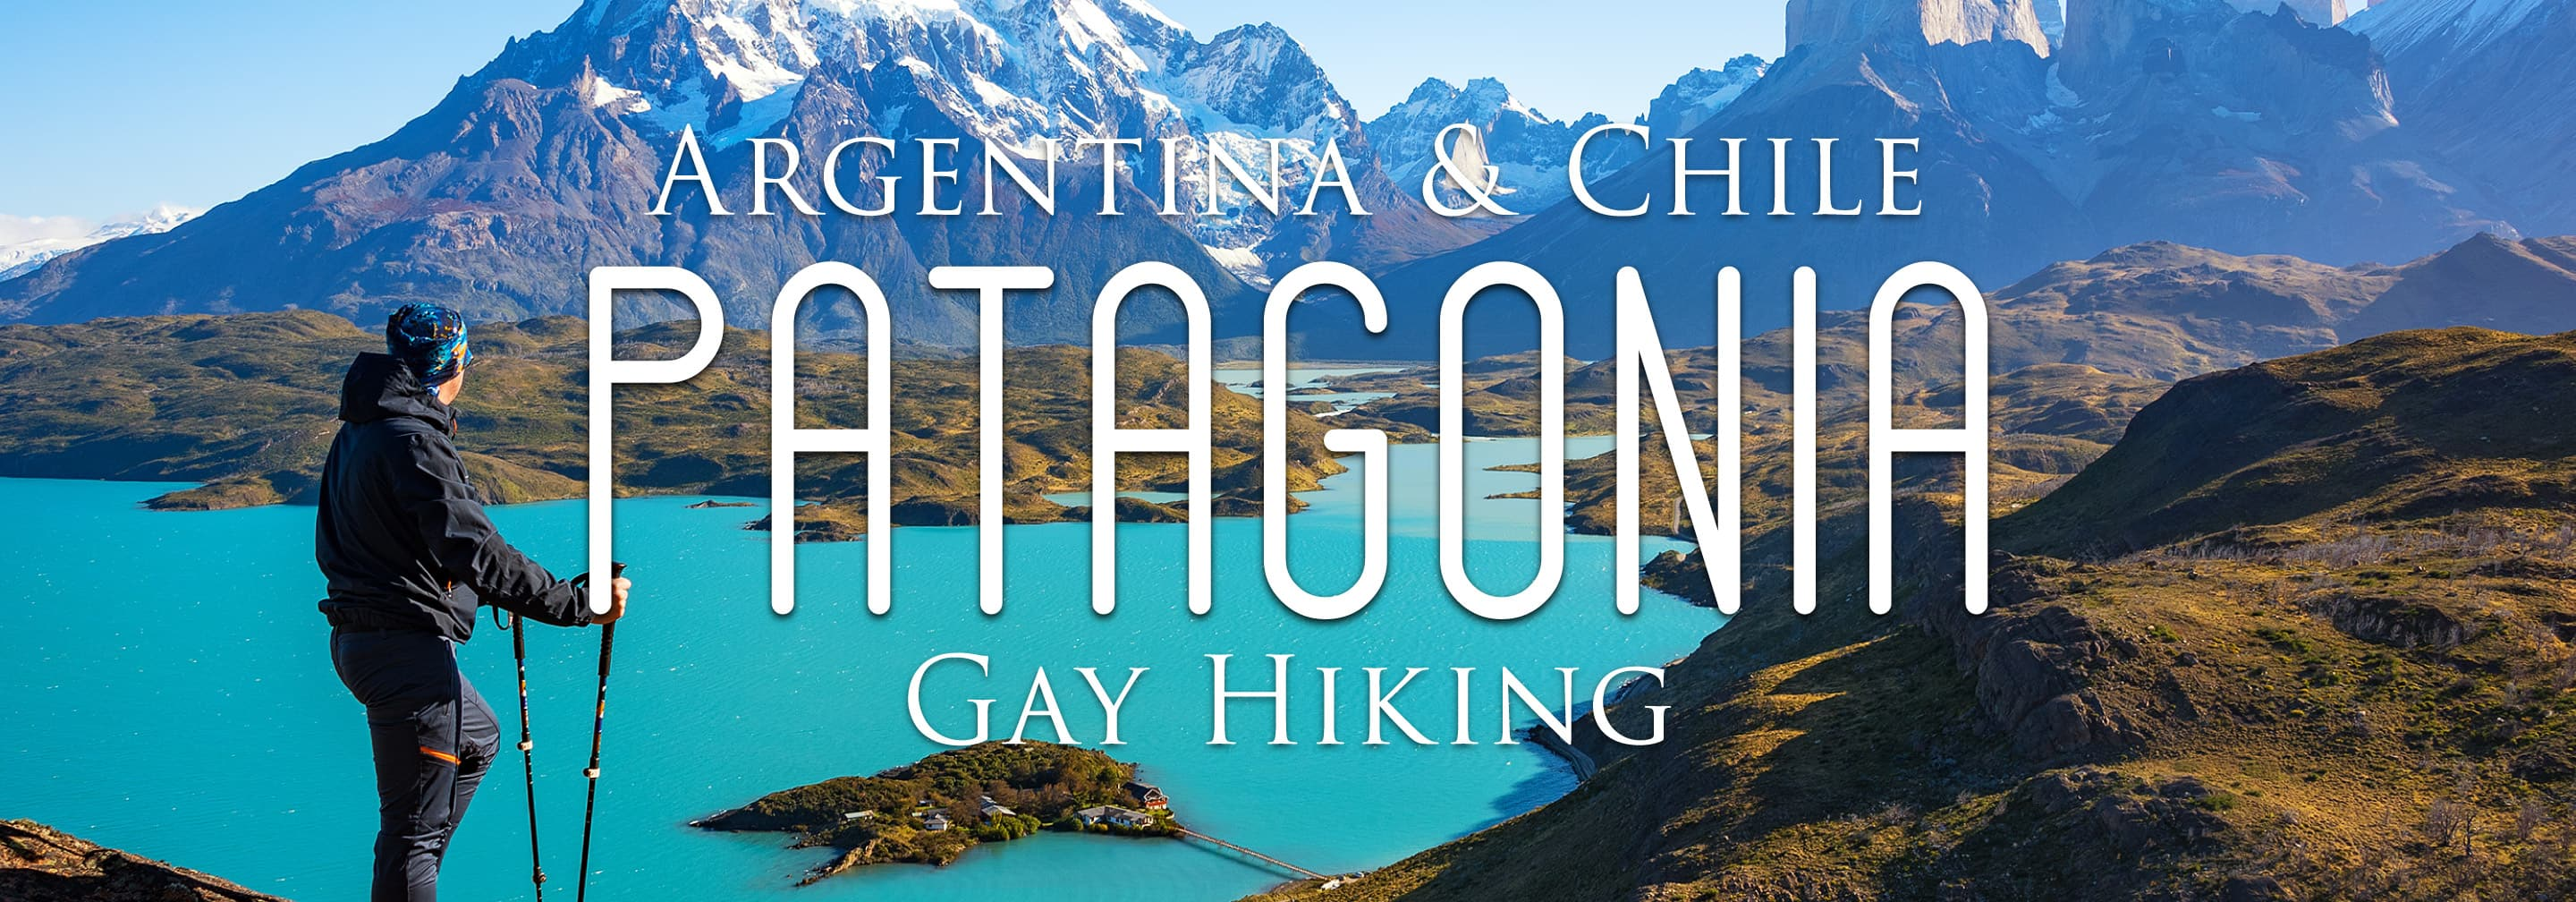 The header image for Out Adventures' Argentina & Chile: Patagonia Gay Hiking tour.